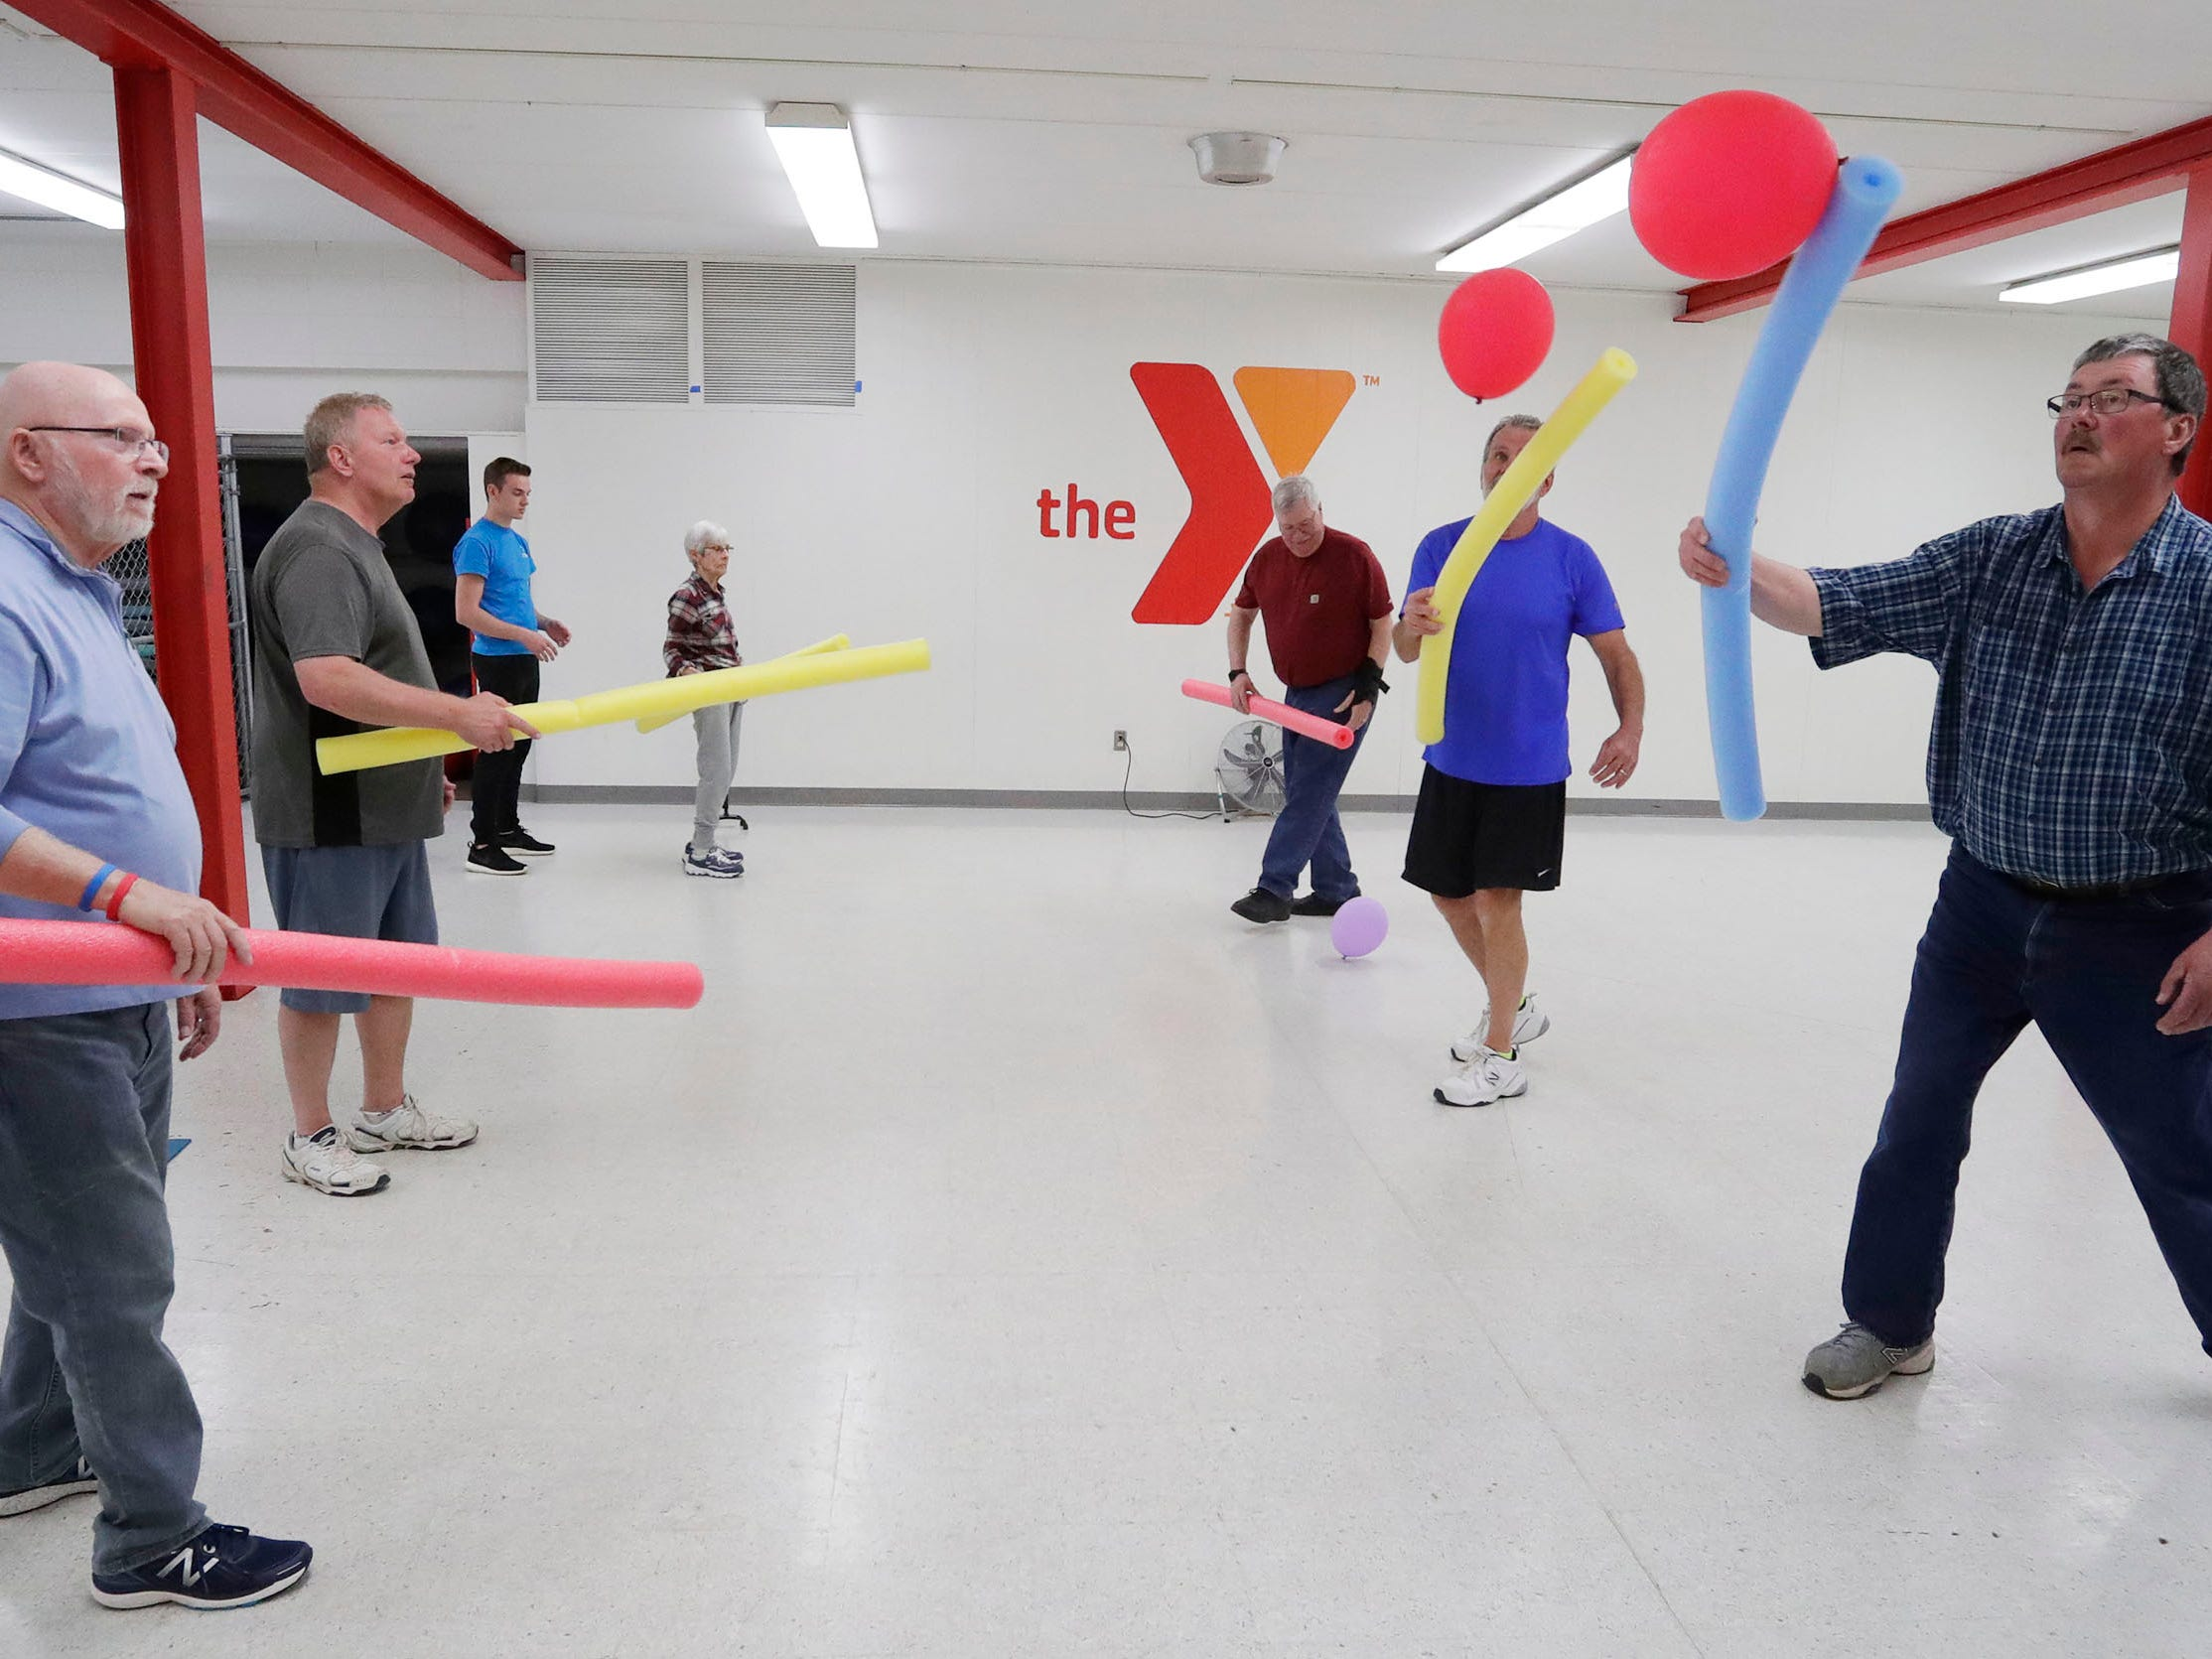 YMCA Fighting Parkinson's class members Ken Pipping, left and Greg Van Helden, work on motor skills during the class, Tuesay, March 26, 2019, in Sheboygan, Wis.